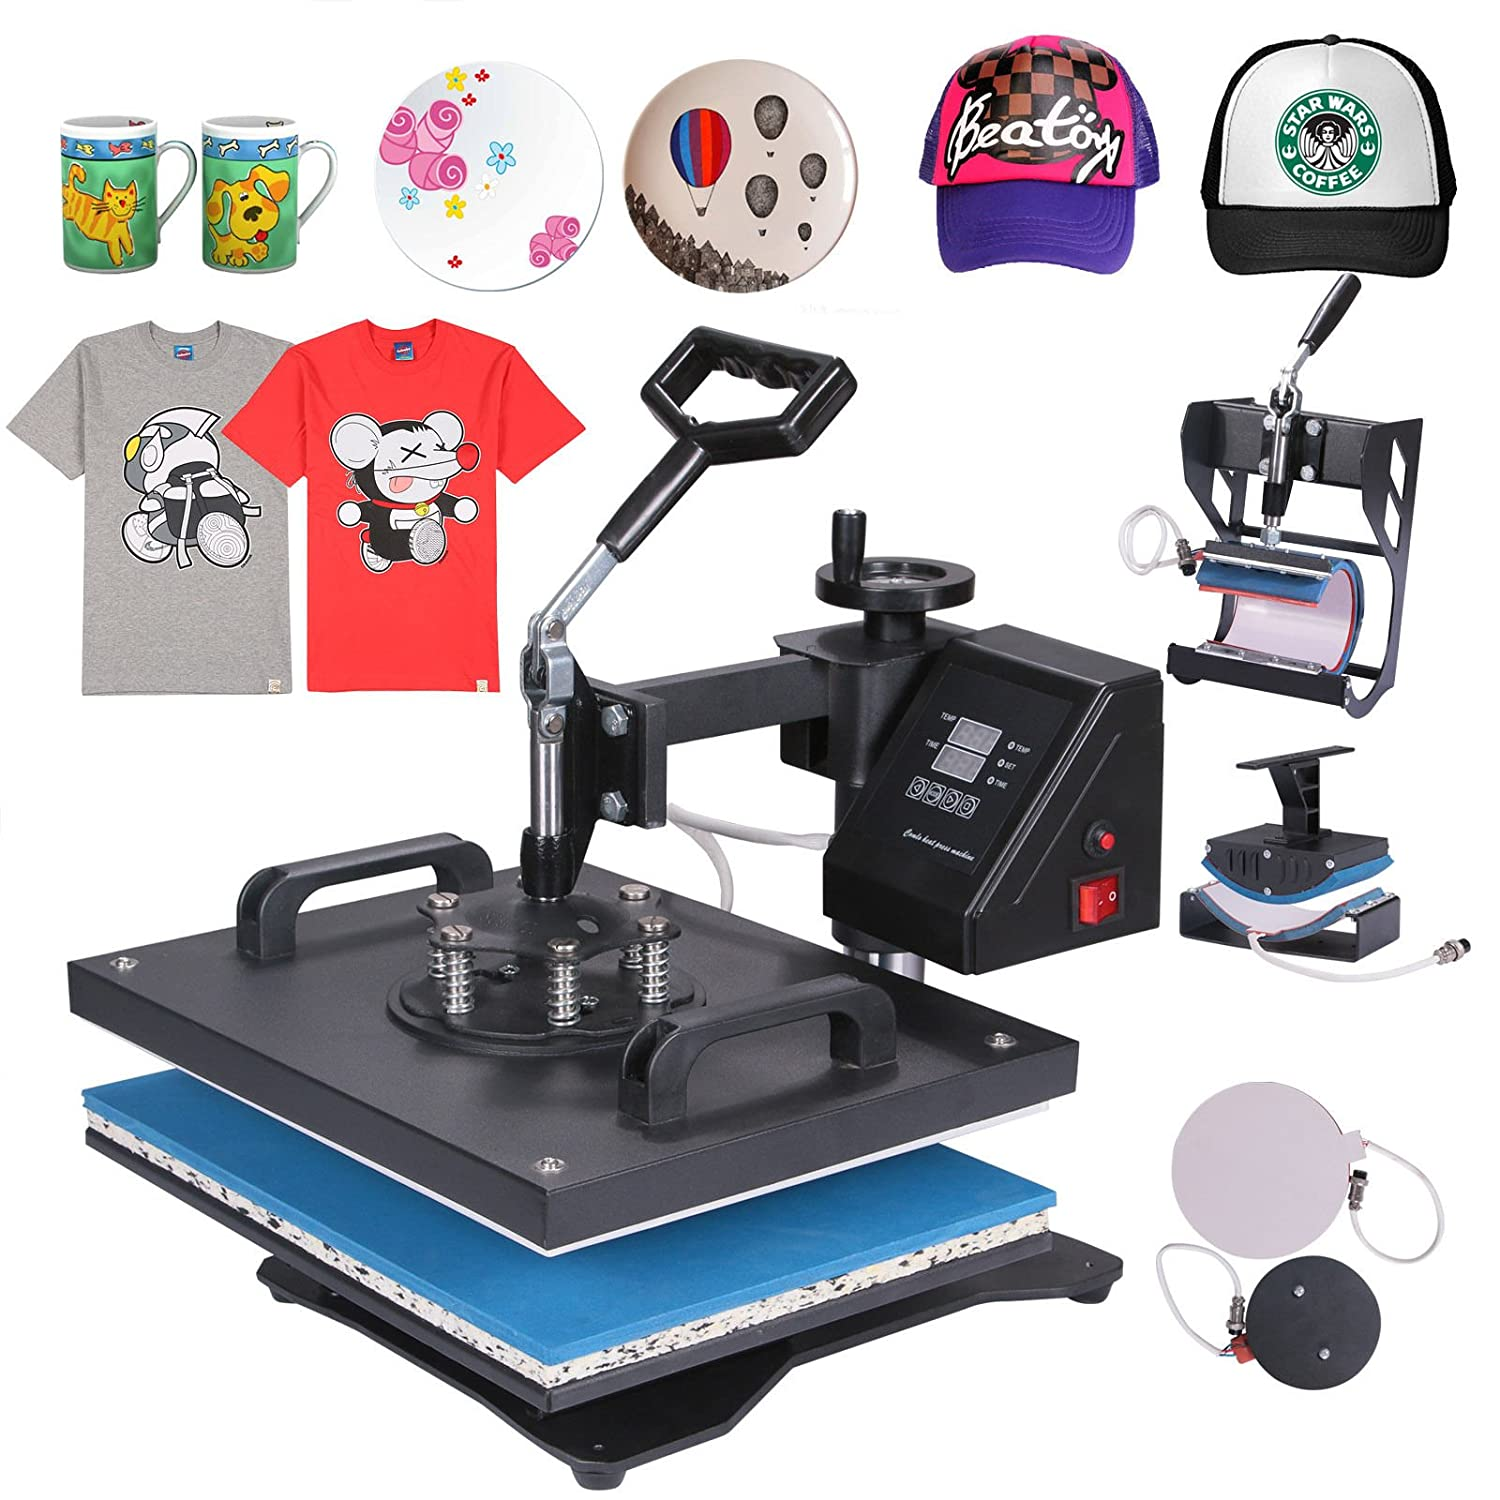 Mophorn Heat Press Multifunction Sublimation Heat Press Machine